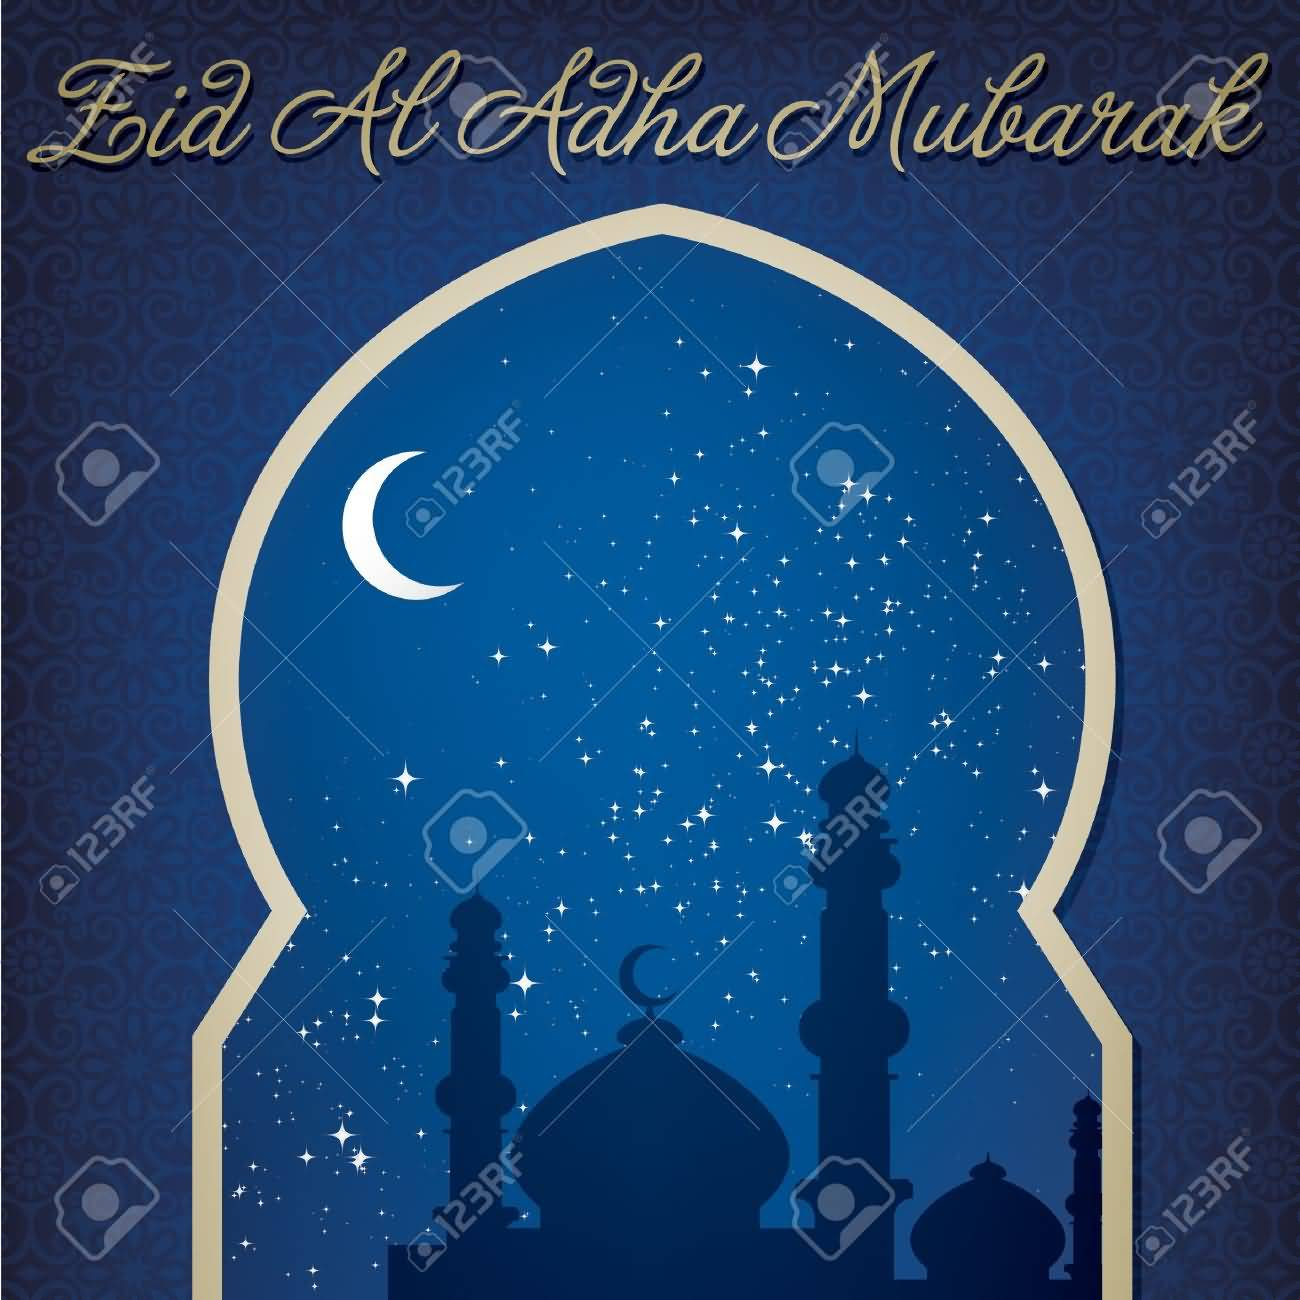 65 best eid ul adha 2016 greeting photos and images eid al adha 2016 mubarak greeting ecard picture m4hsunfo